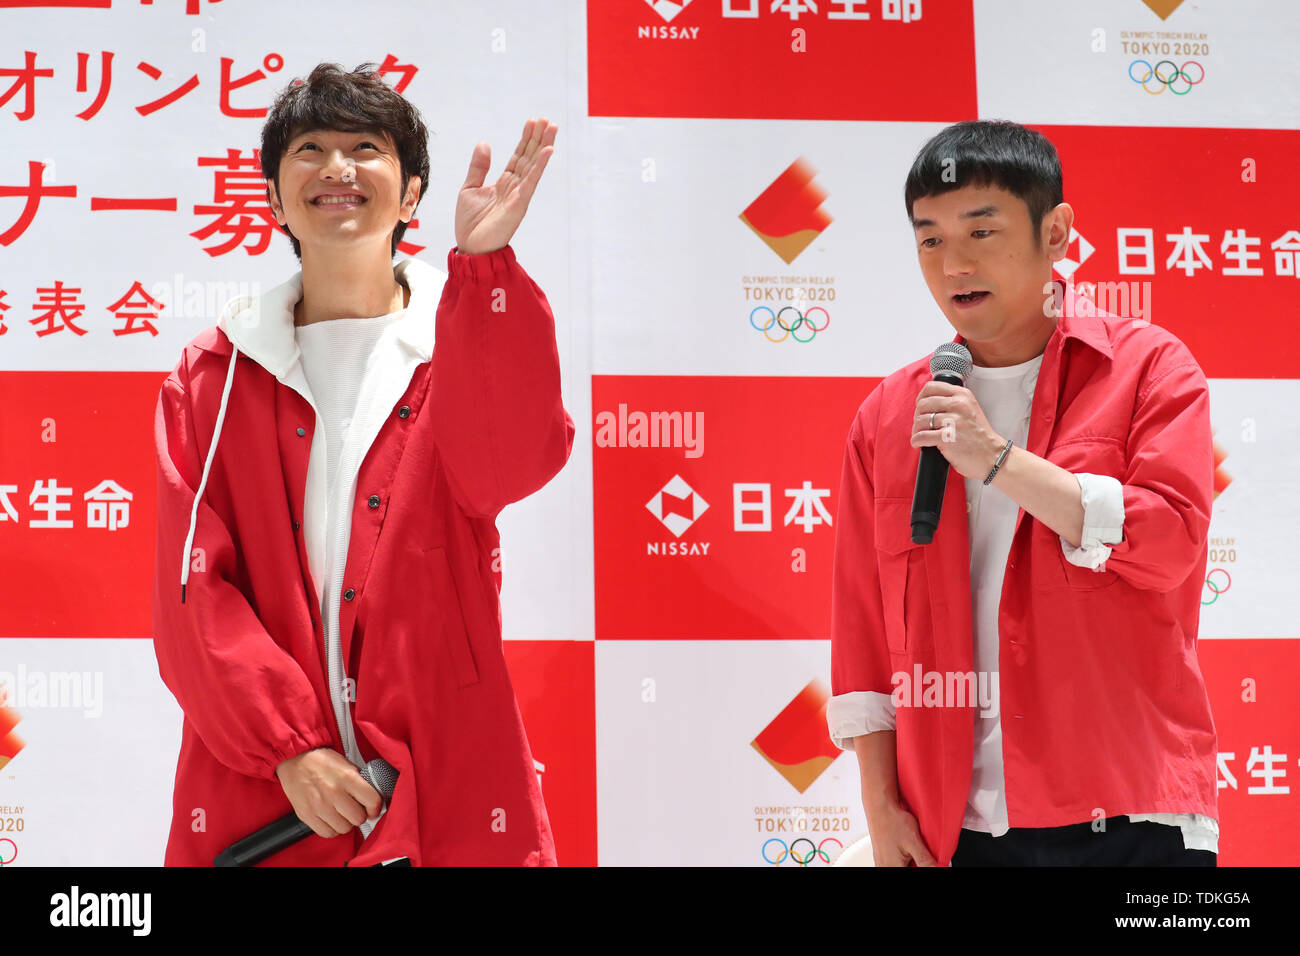 (L to R) Yujin Kitagawa, Koji Iwasawa, JUNE 17, 2019 : Nippon Life Holds Press Conference on Recruiting Torch Runners for the Tokyo 2020 Olympic Games, in Tokyo, Japan. Credit: YUTAKA/AFLO SPORT/Alamy Live News - Stock Image